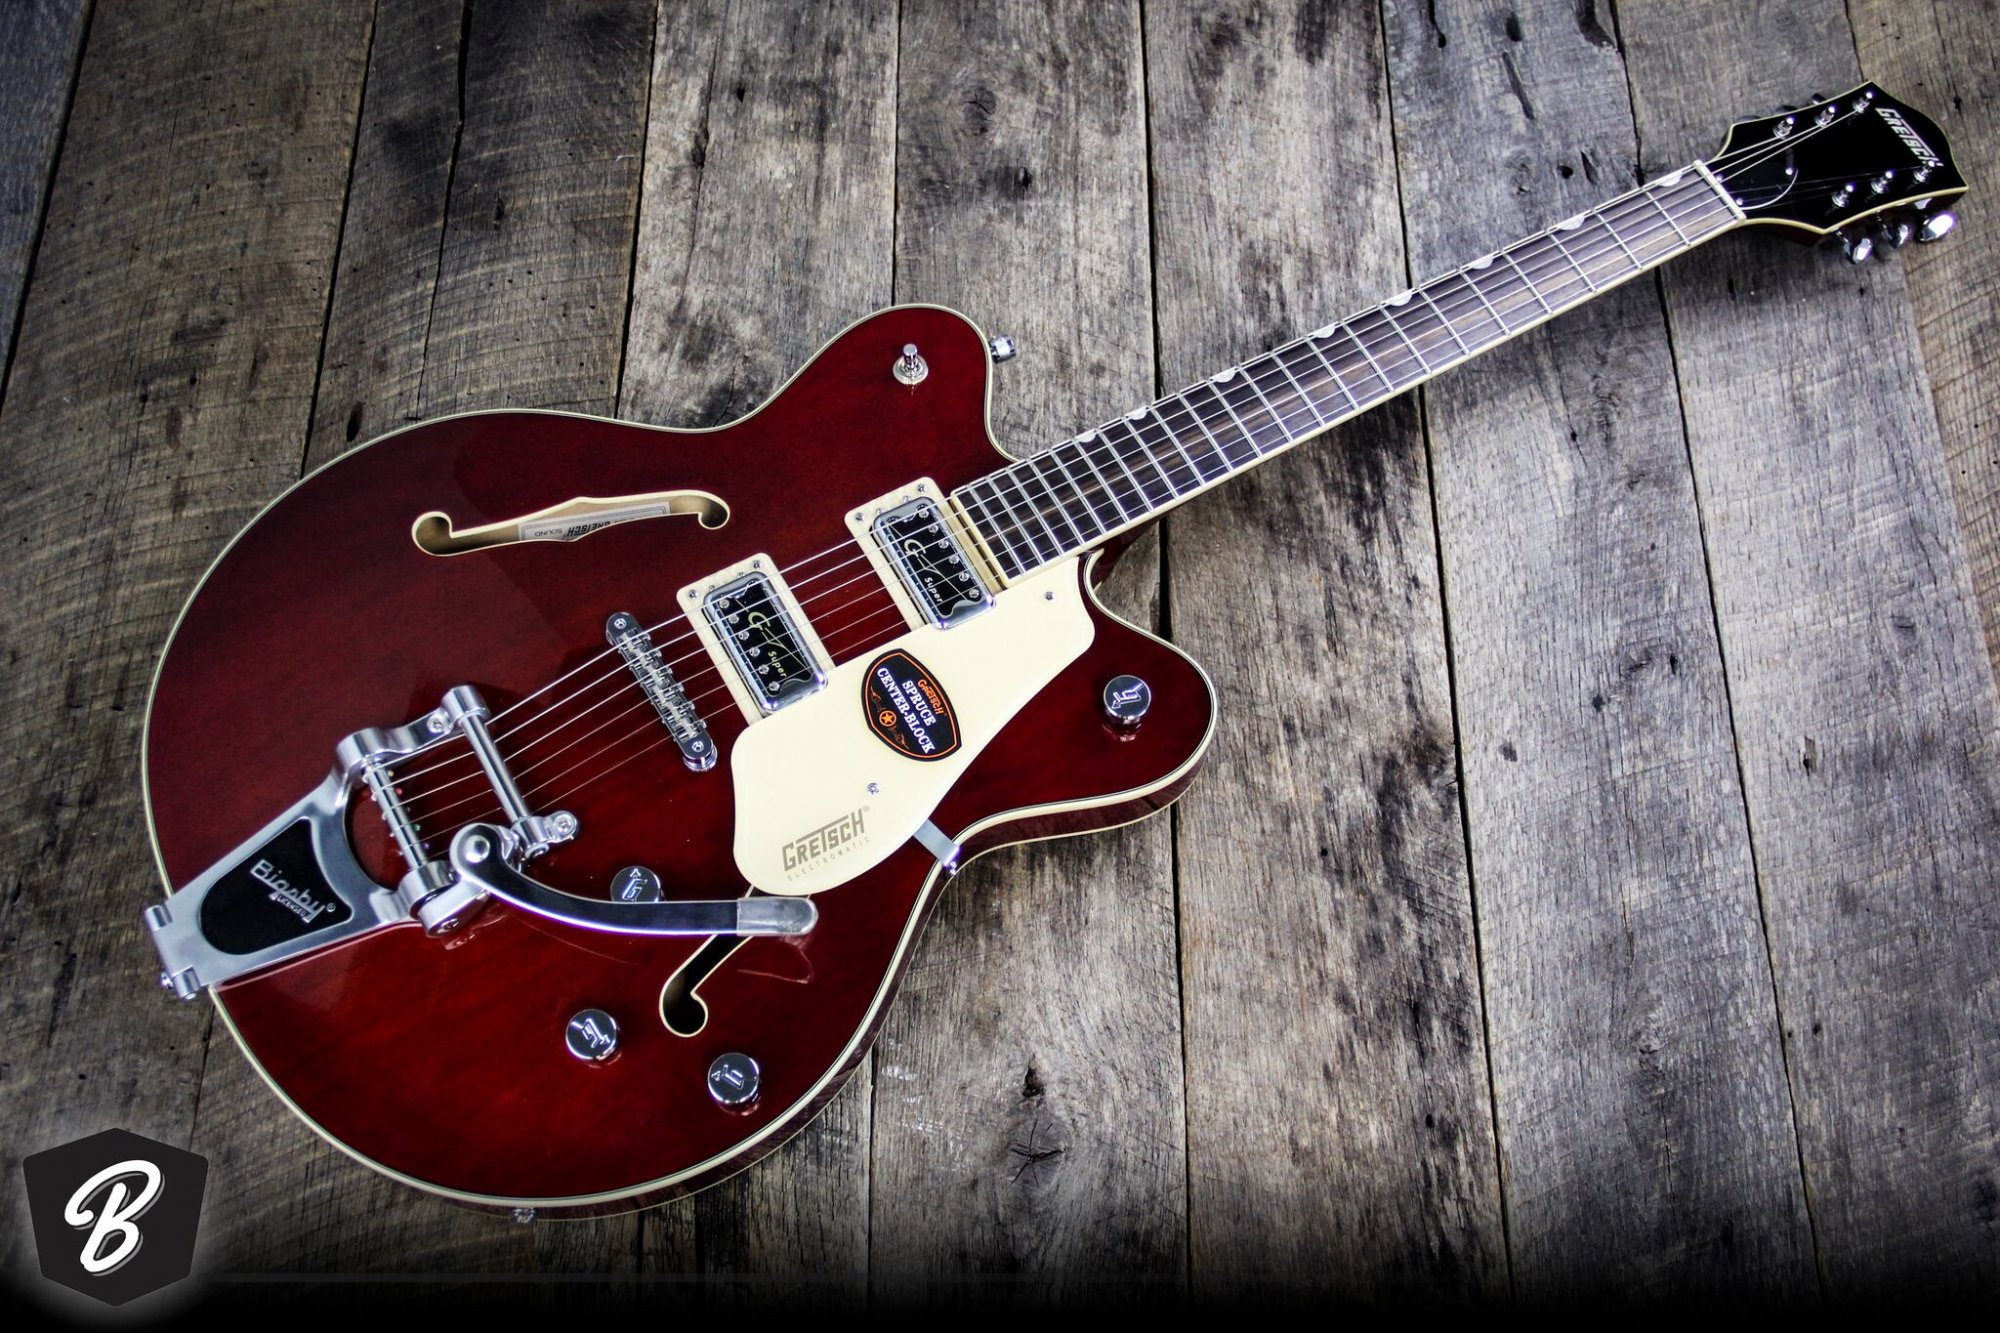 Gretsch 5622T Electromatic Center Block Semi-hollow